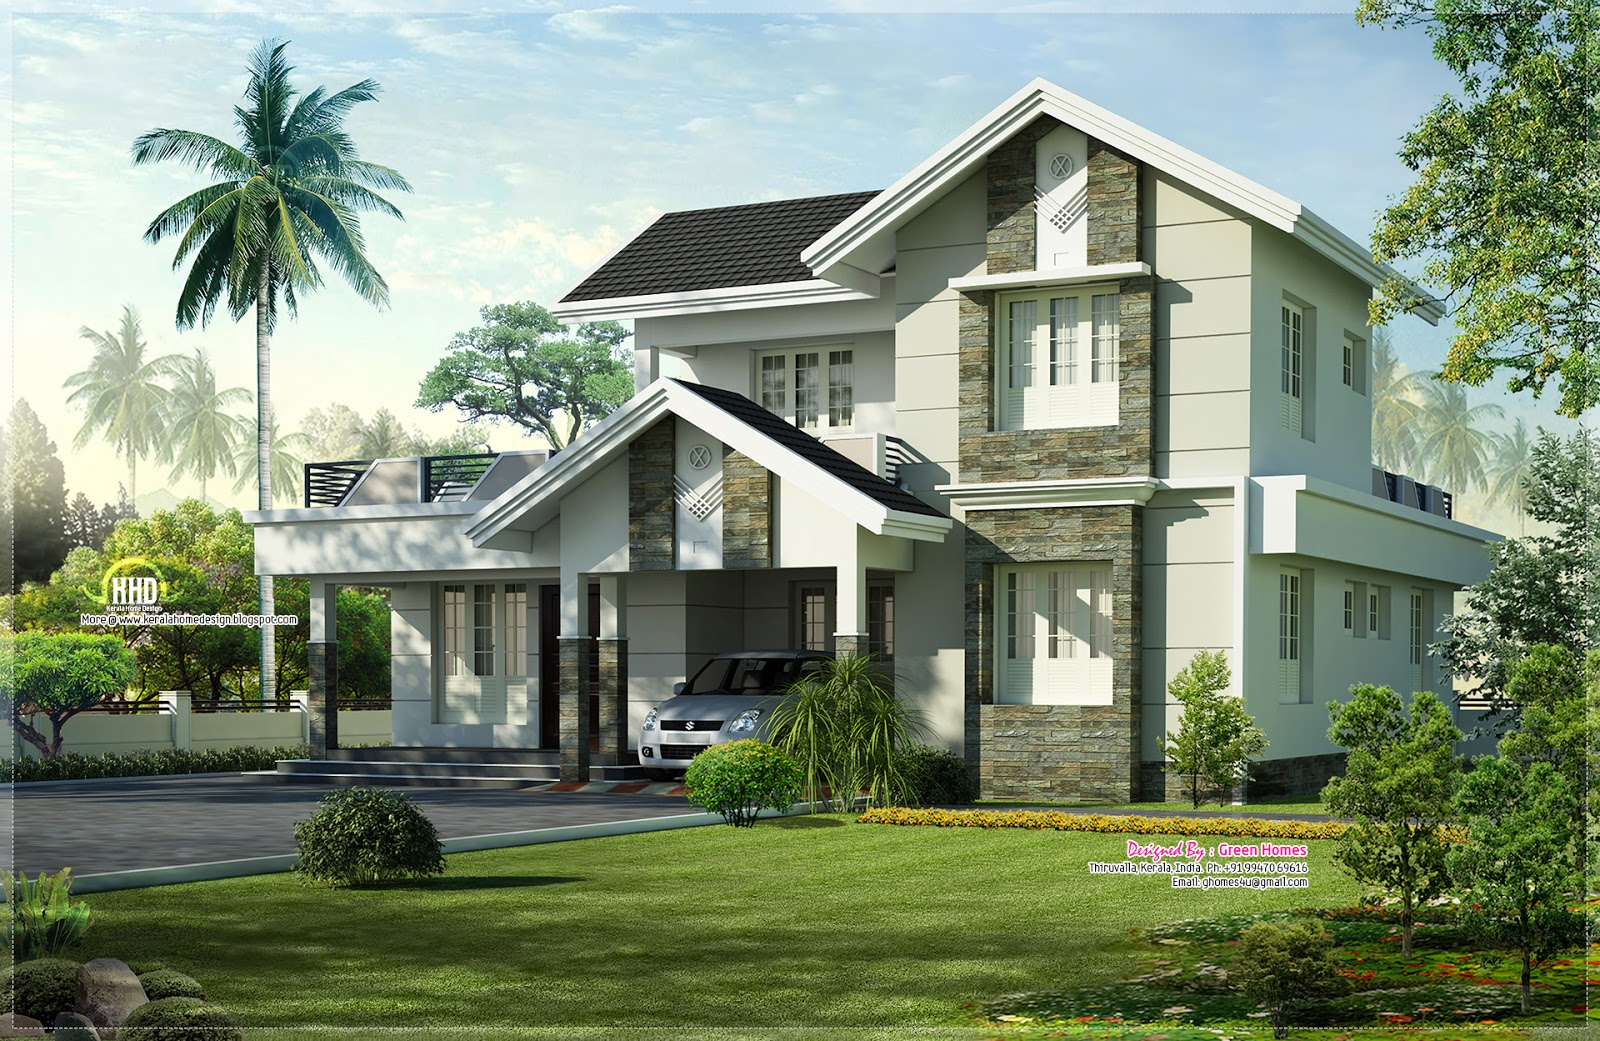 1975 nice home exterior design home kerala plans House design images